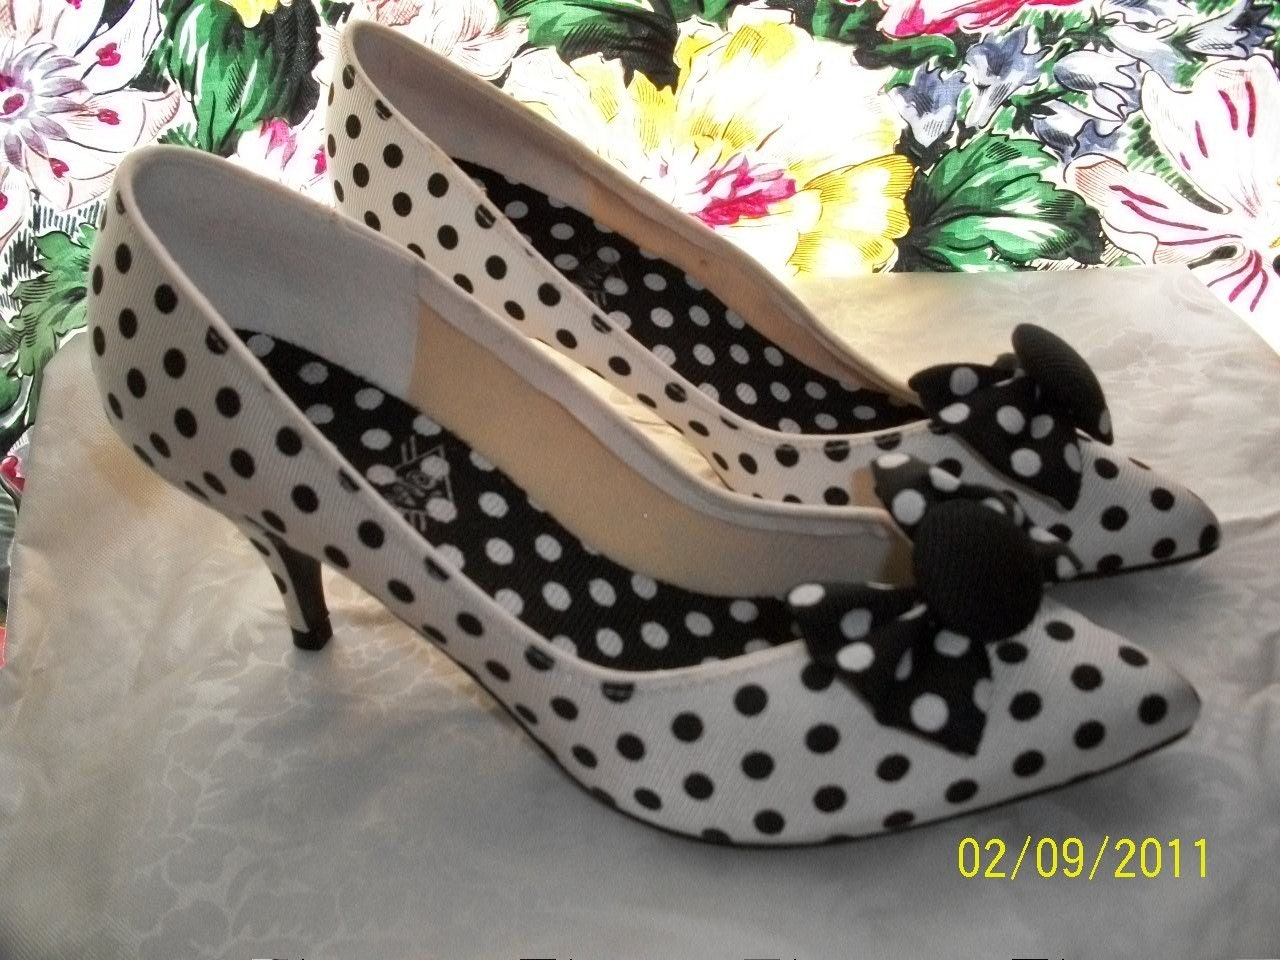 Shoes Polka Dot Black White 3 Inch Heels Fabric By